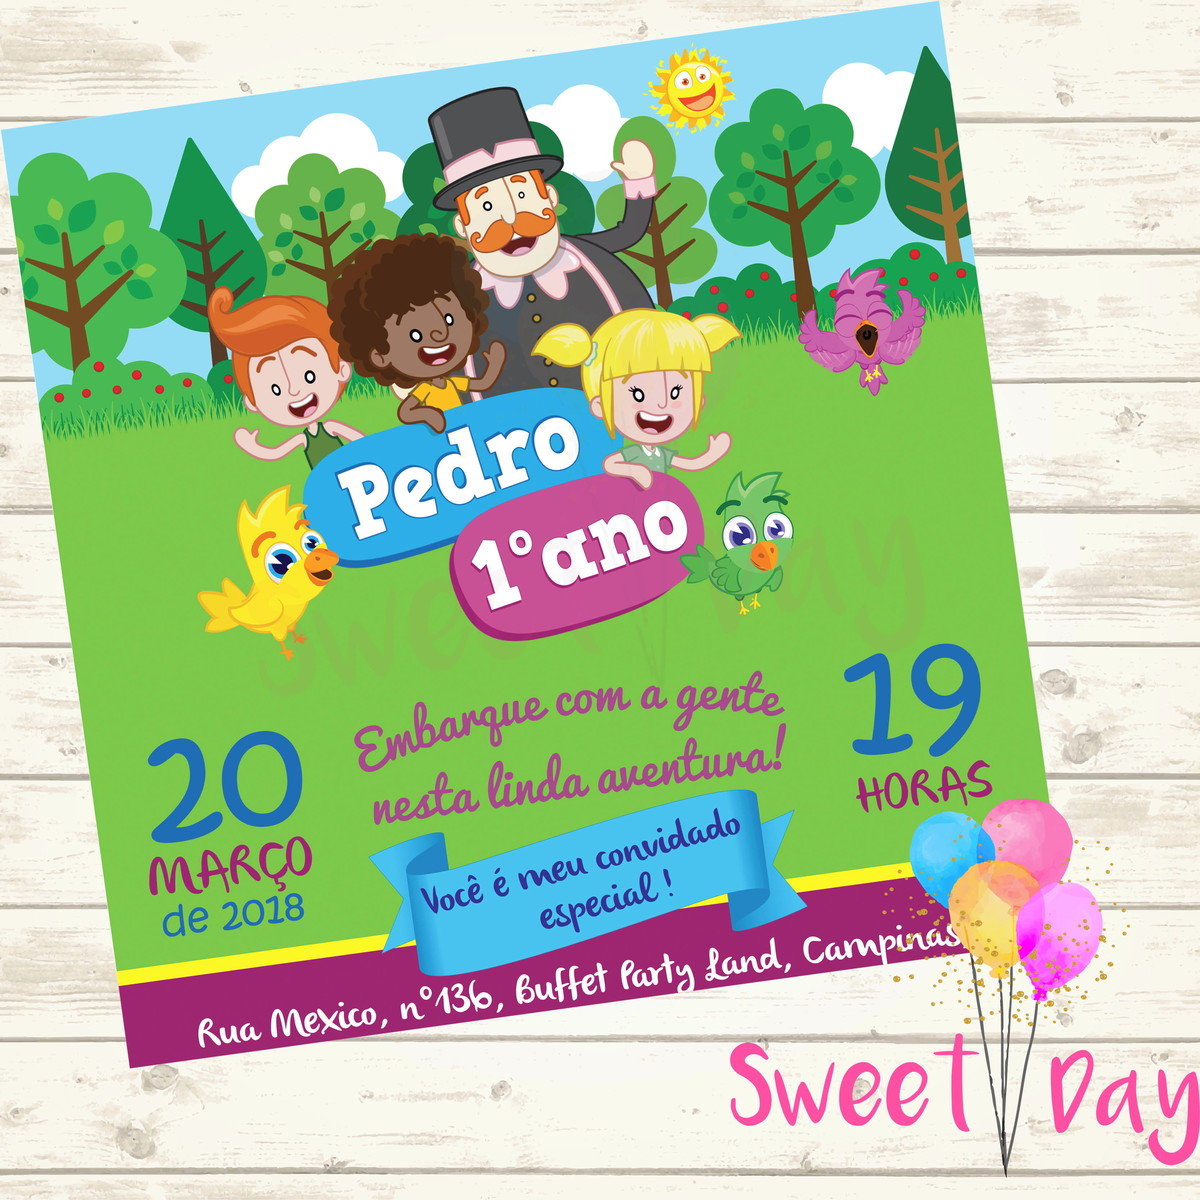 Convite Virtual Mundo Bita No Elo7 Sweet Day D47270